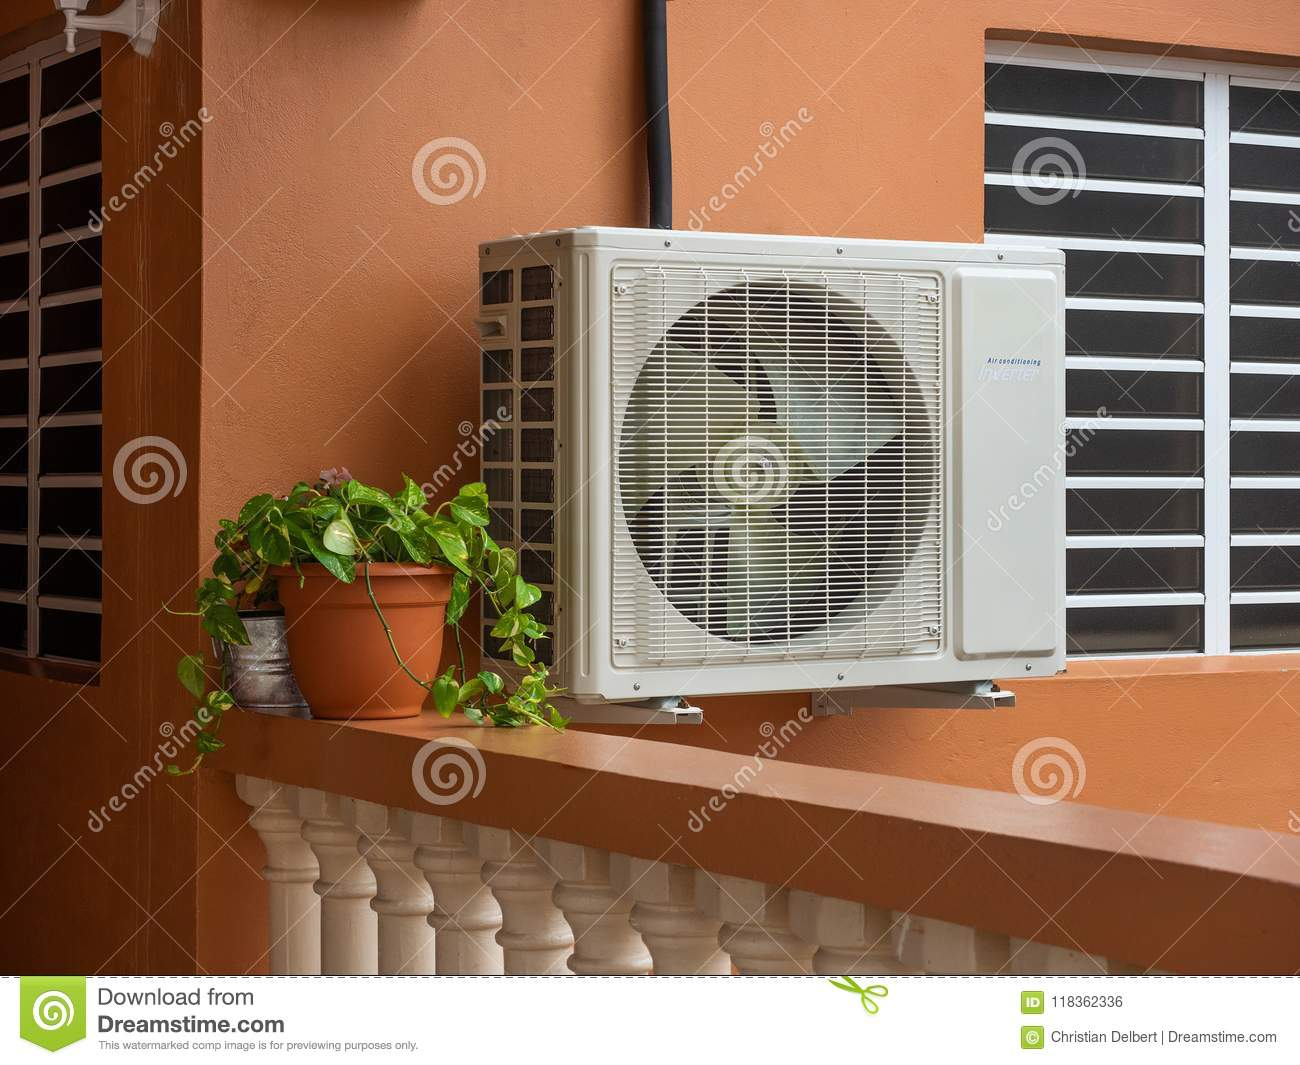 ac heater unit air conditioning unit outside residential house conditioning unit outside residential house stock photo